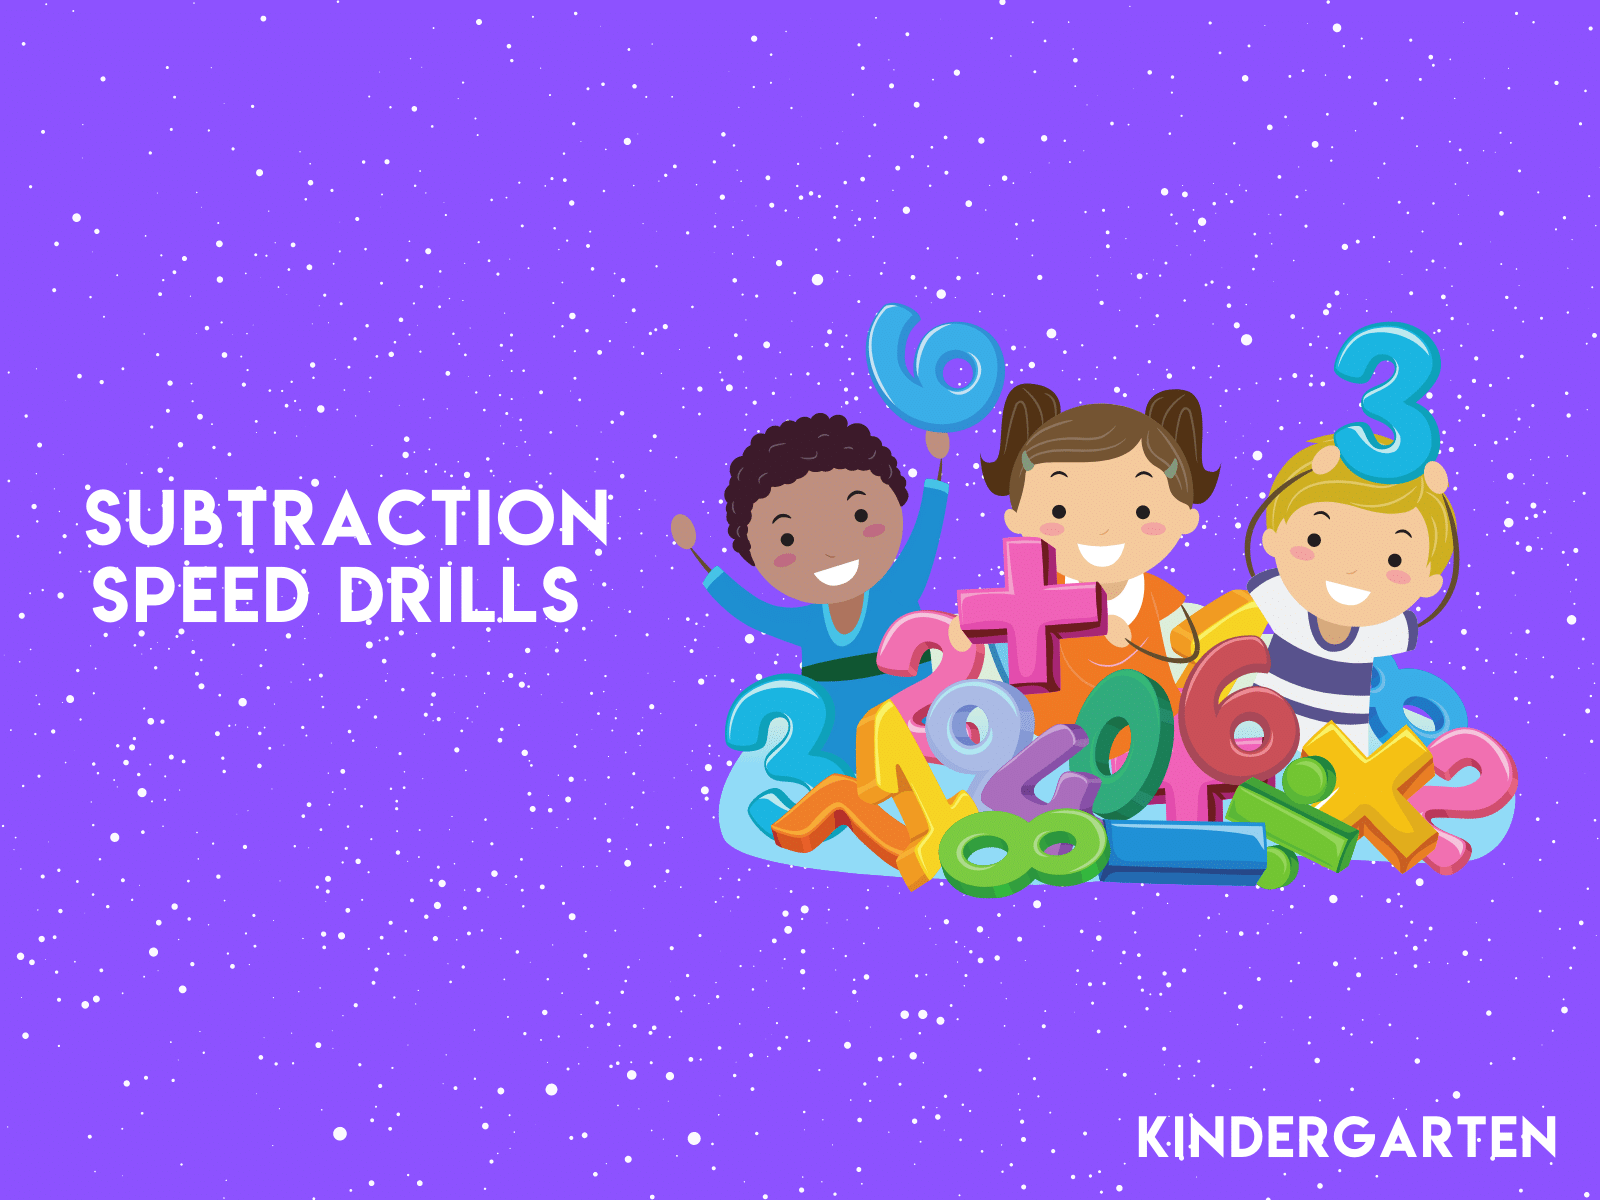 Try all our free learning resources like these kindergarten subtraction speed drills.